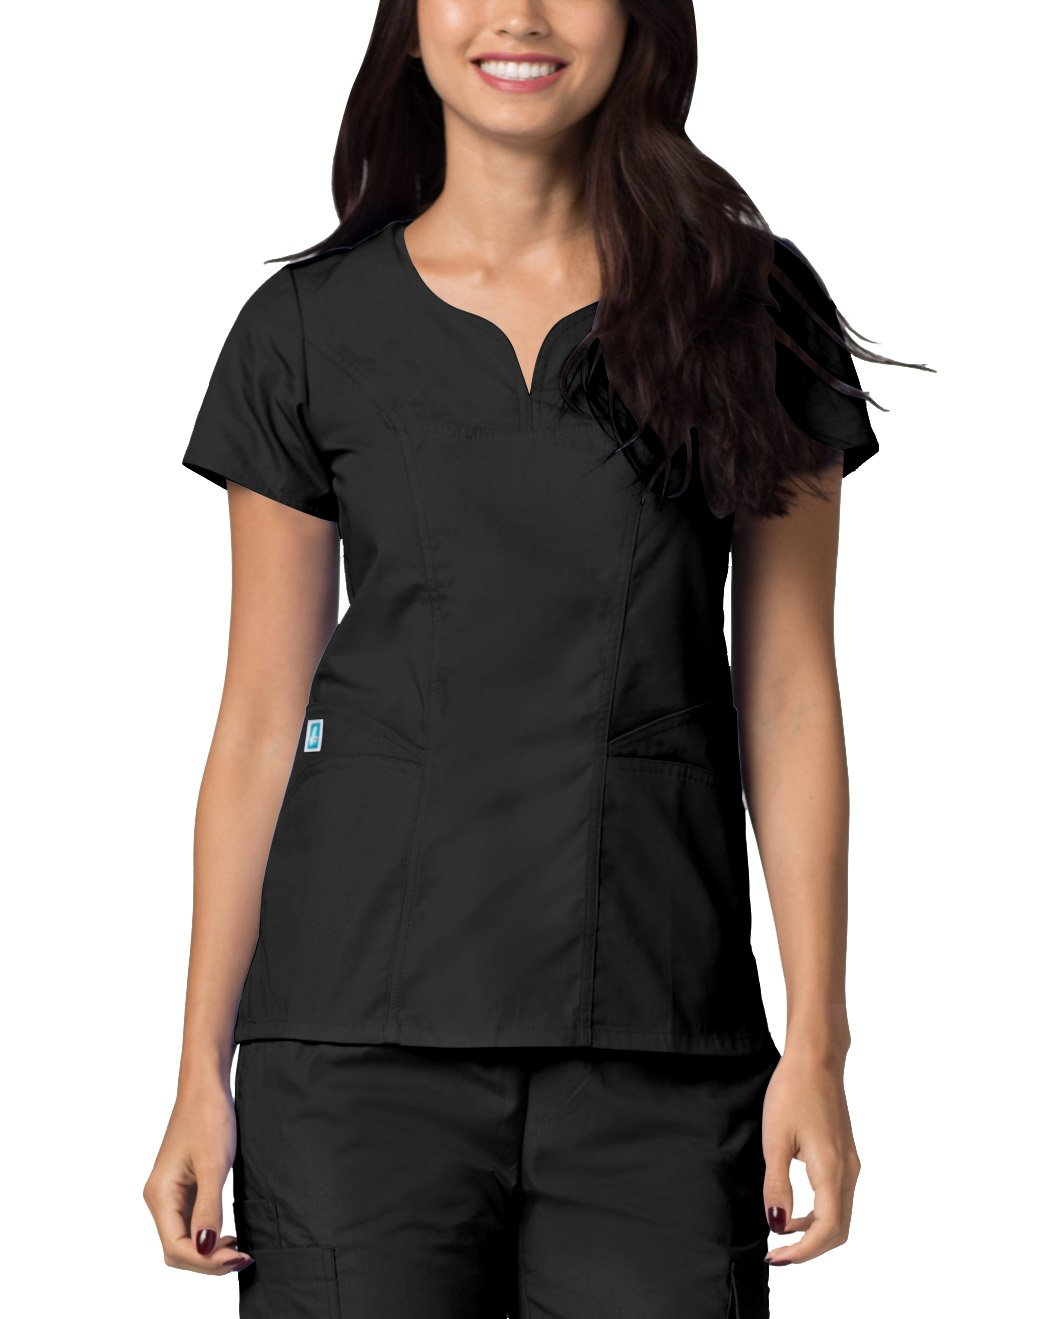 Adar Universal Curved Pocket Glamour Scrub Top - 2632 - Black - S by ADAR UNIFORMS